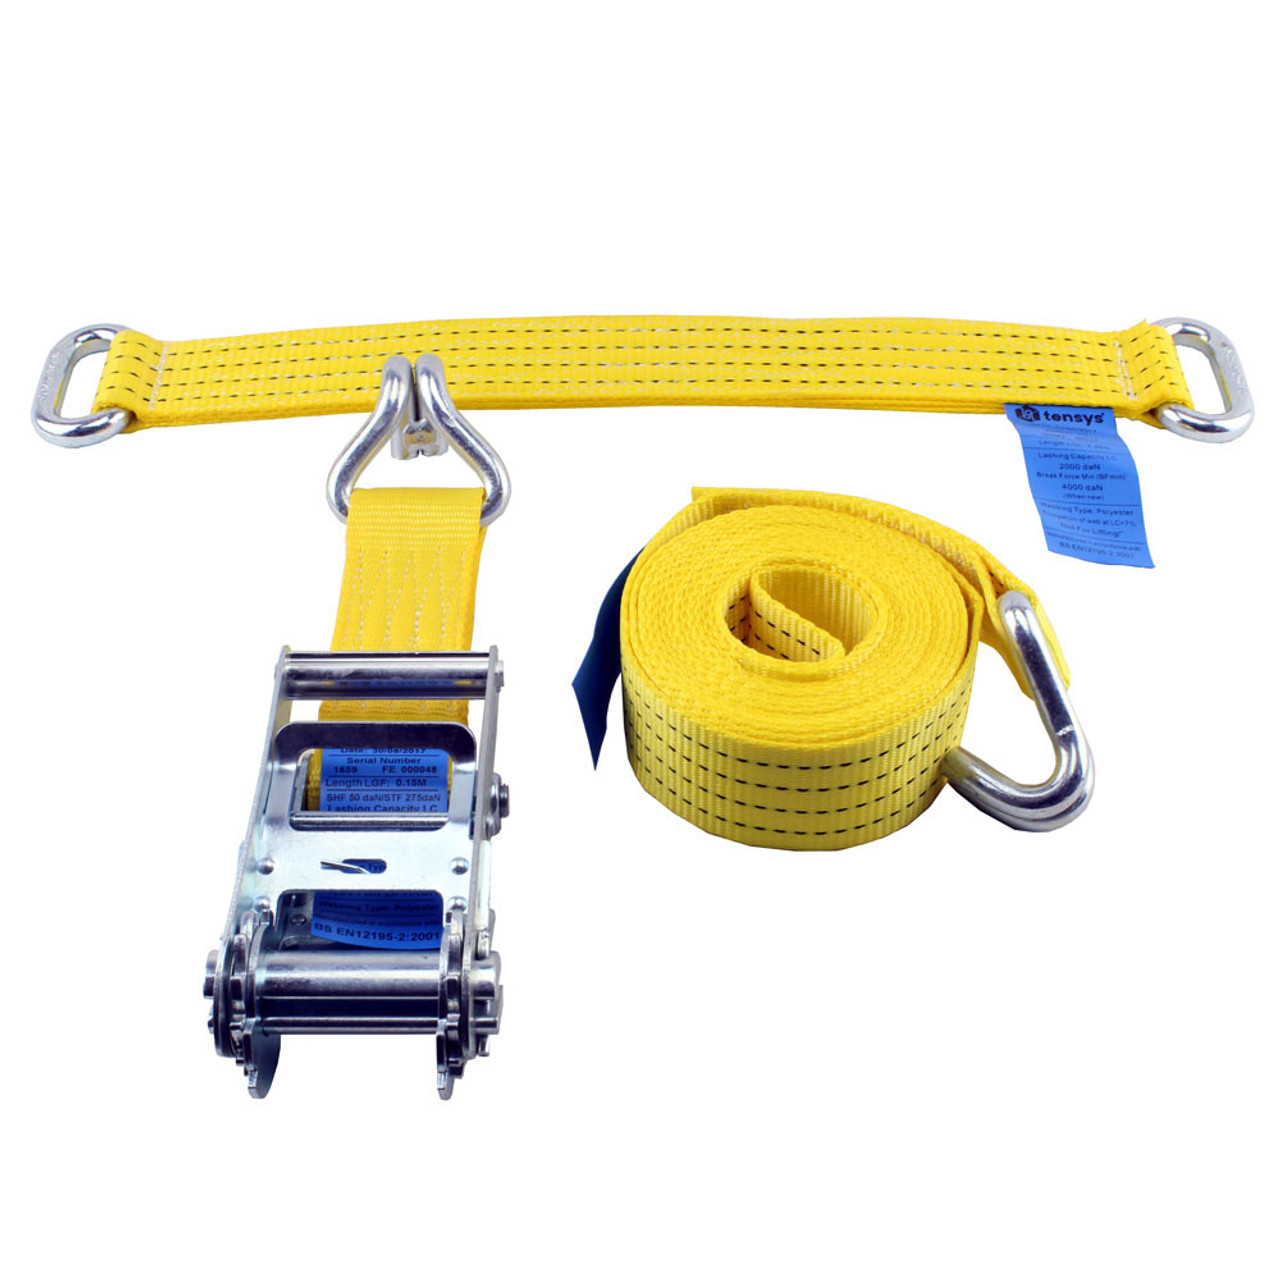 KIT OF 4 TRANSPORTER LASHINGS WITH STEEL EYE DIVERTERS AND FREE DELIVERY